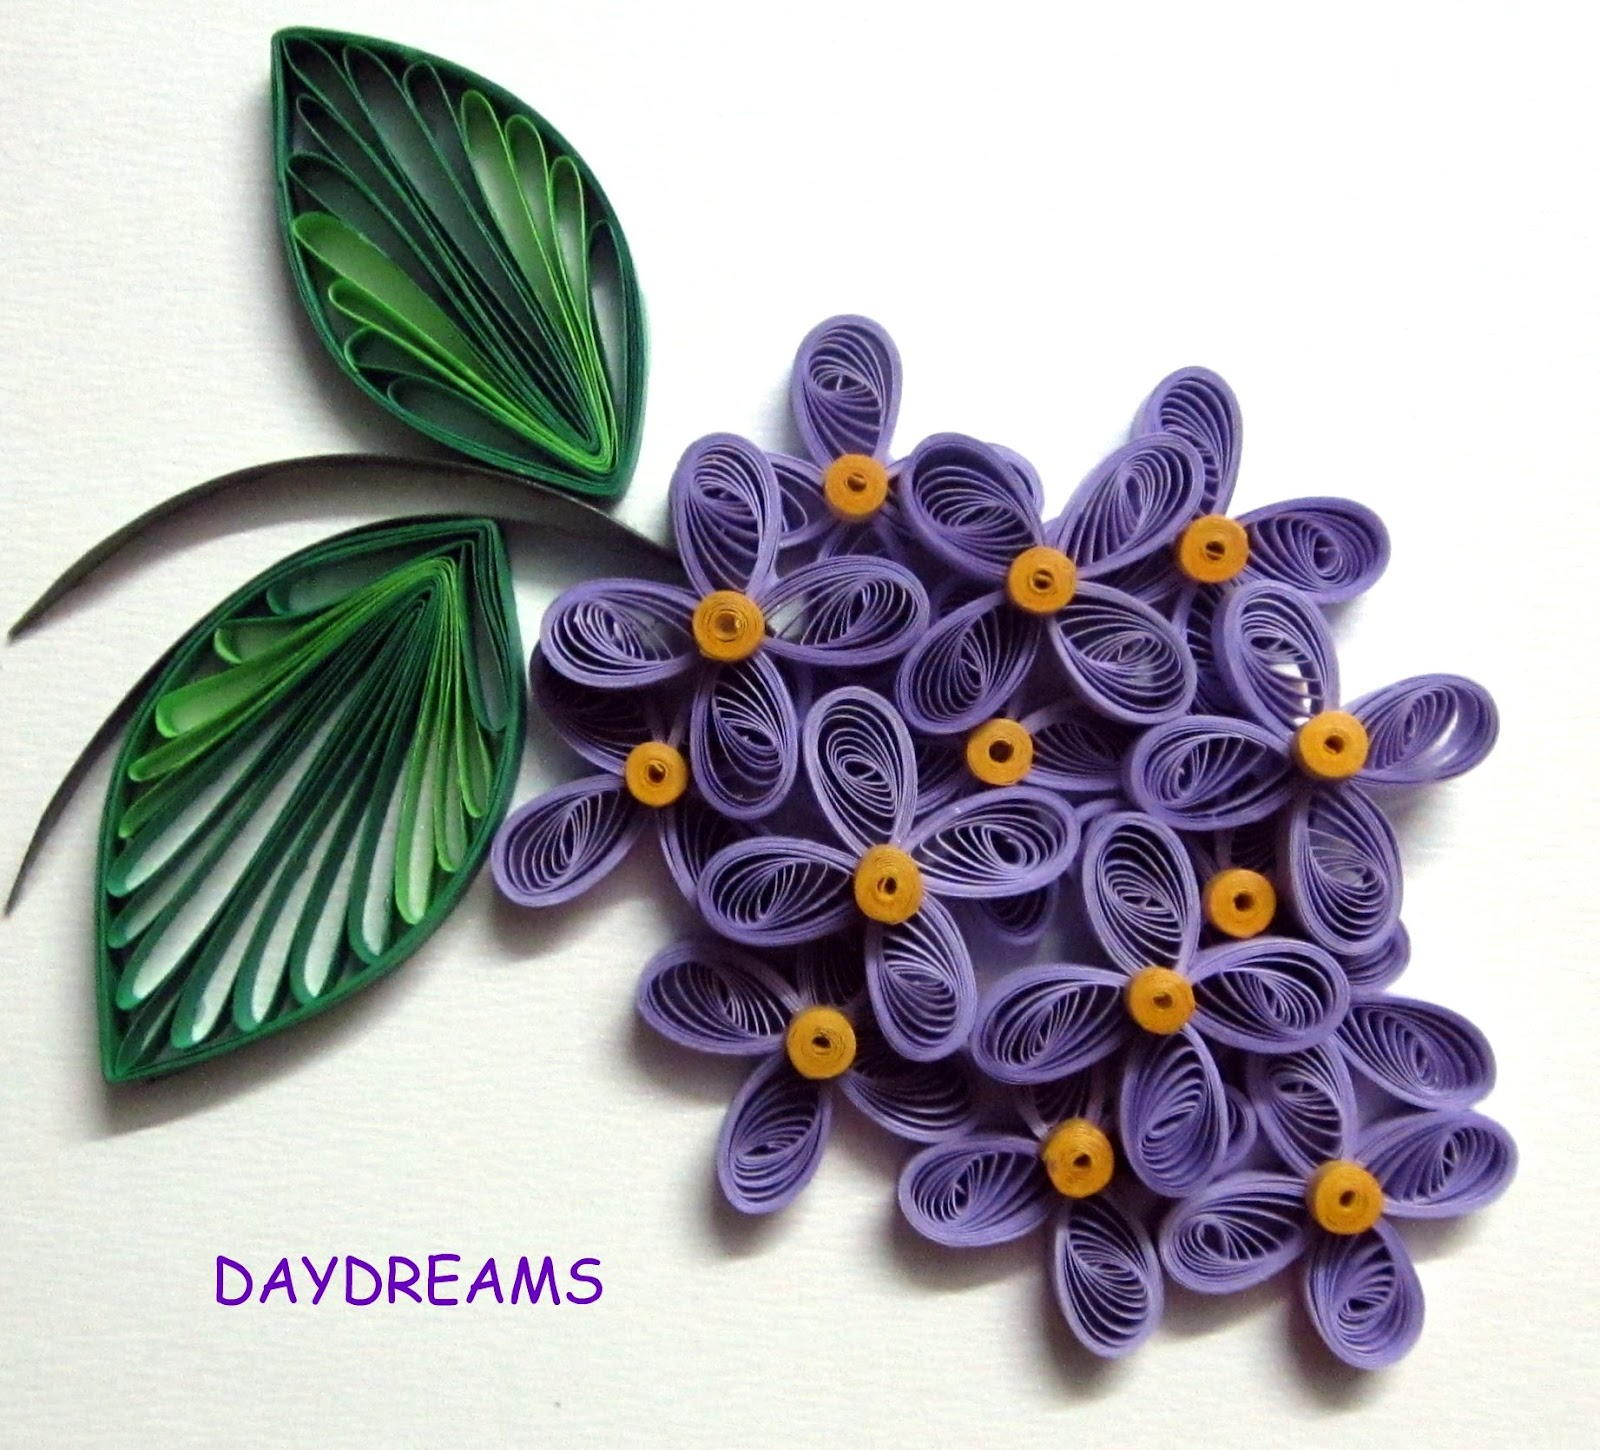 Daydreams quilled flowers for Quilling patterns